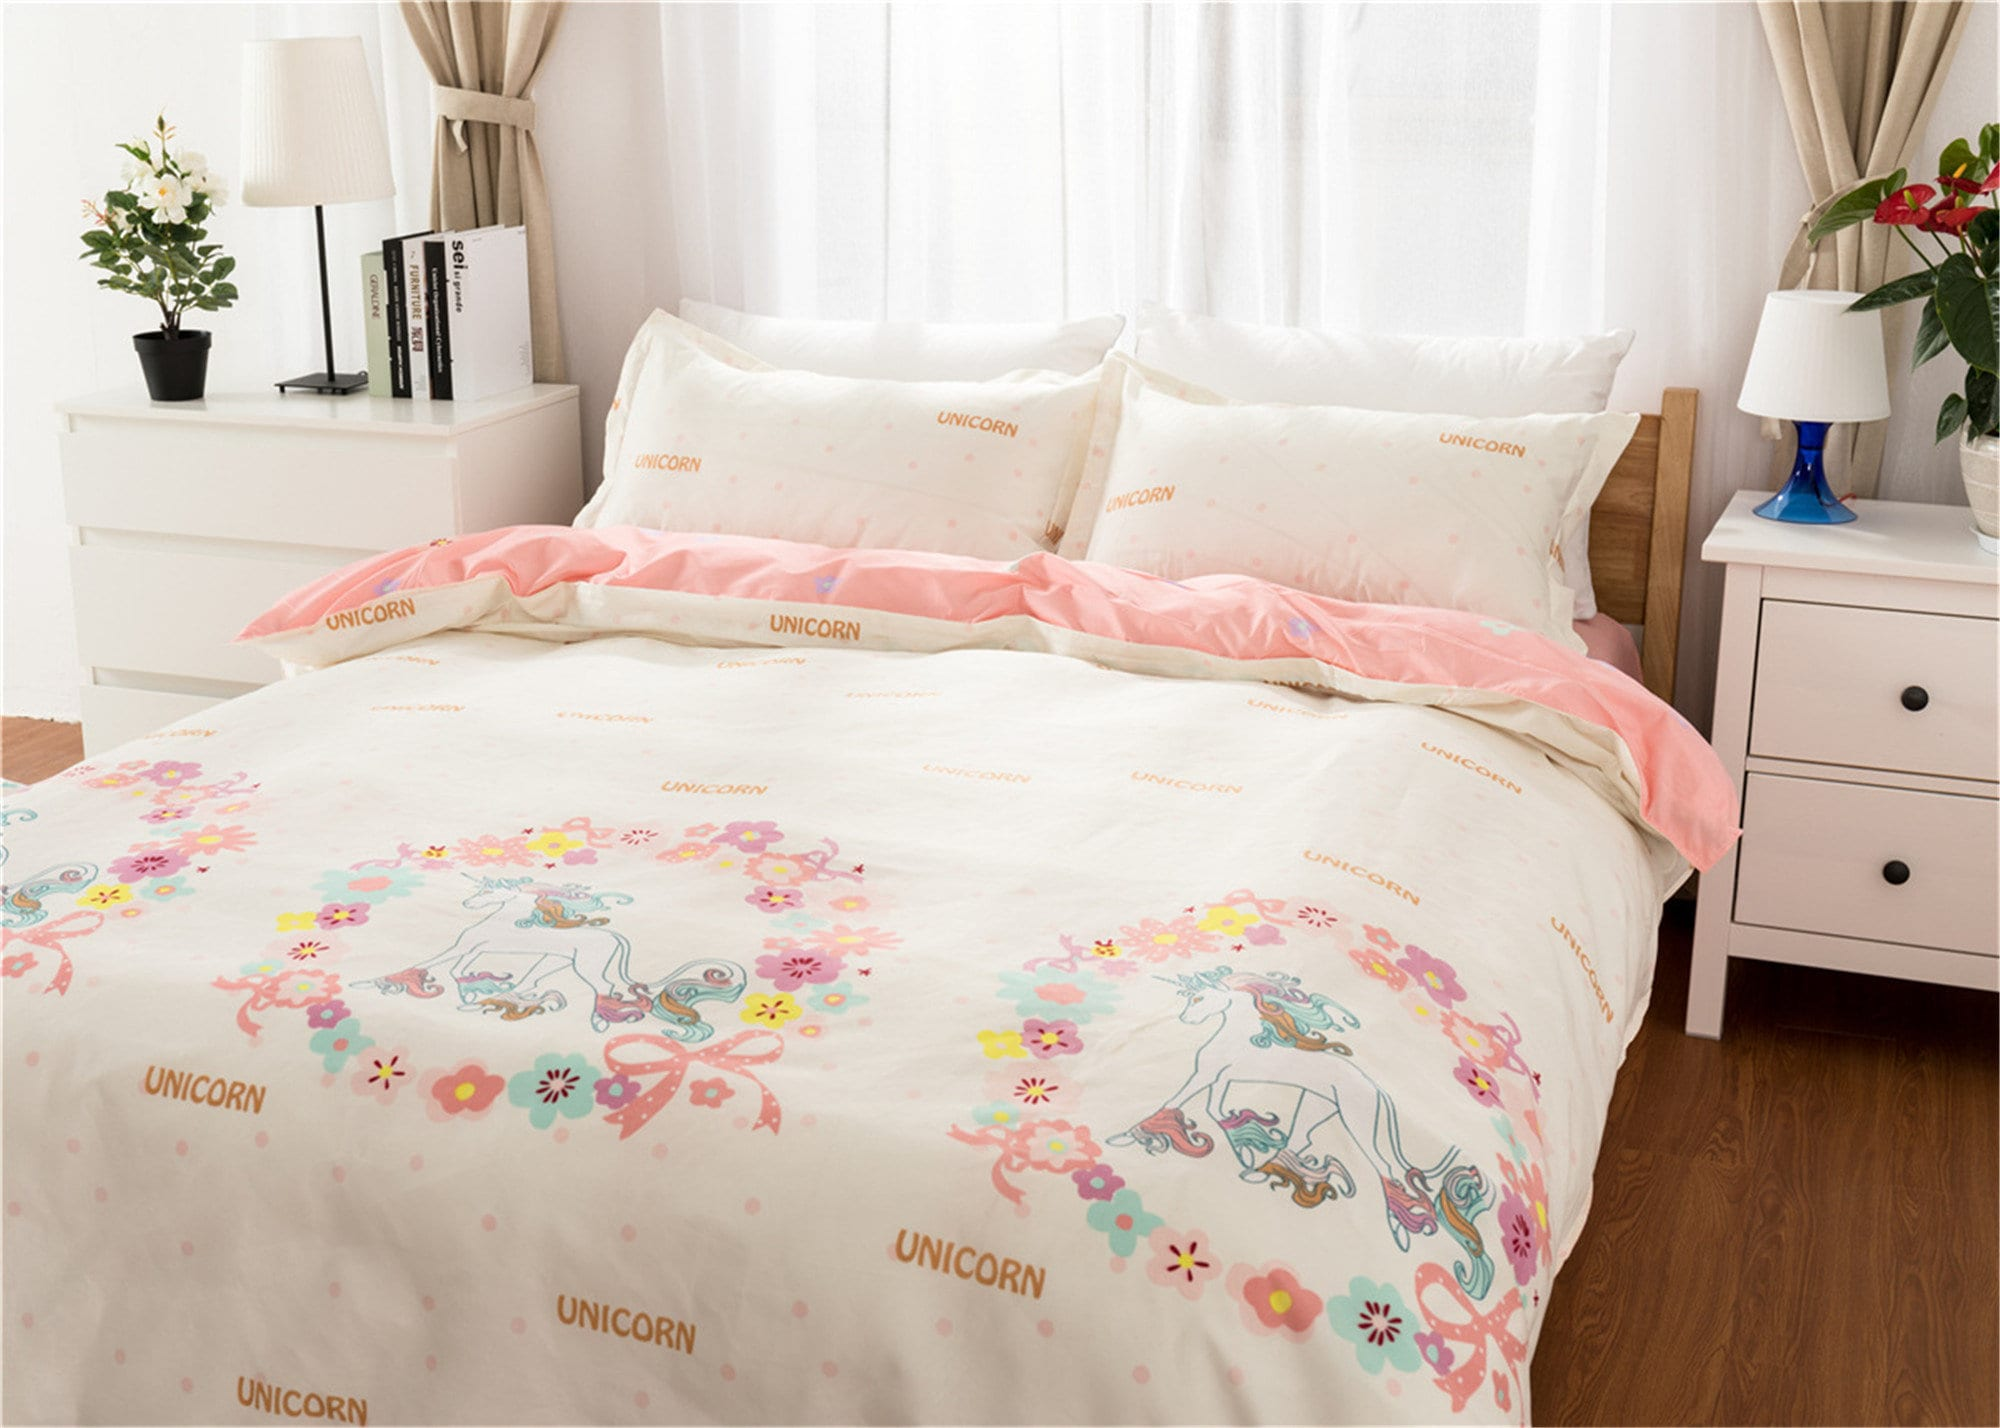 Duvet Cover Set Unicorn Bedding Set Girls Cute Bed Set Microfiber Duvet Cover Pillowcase Soft Breathable